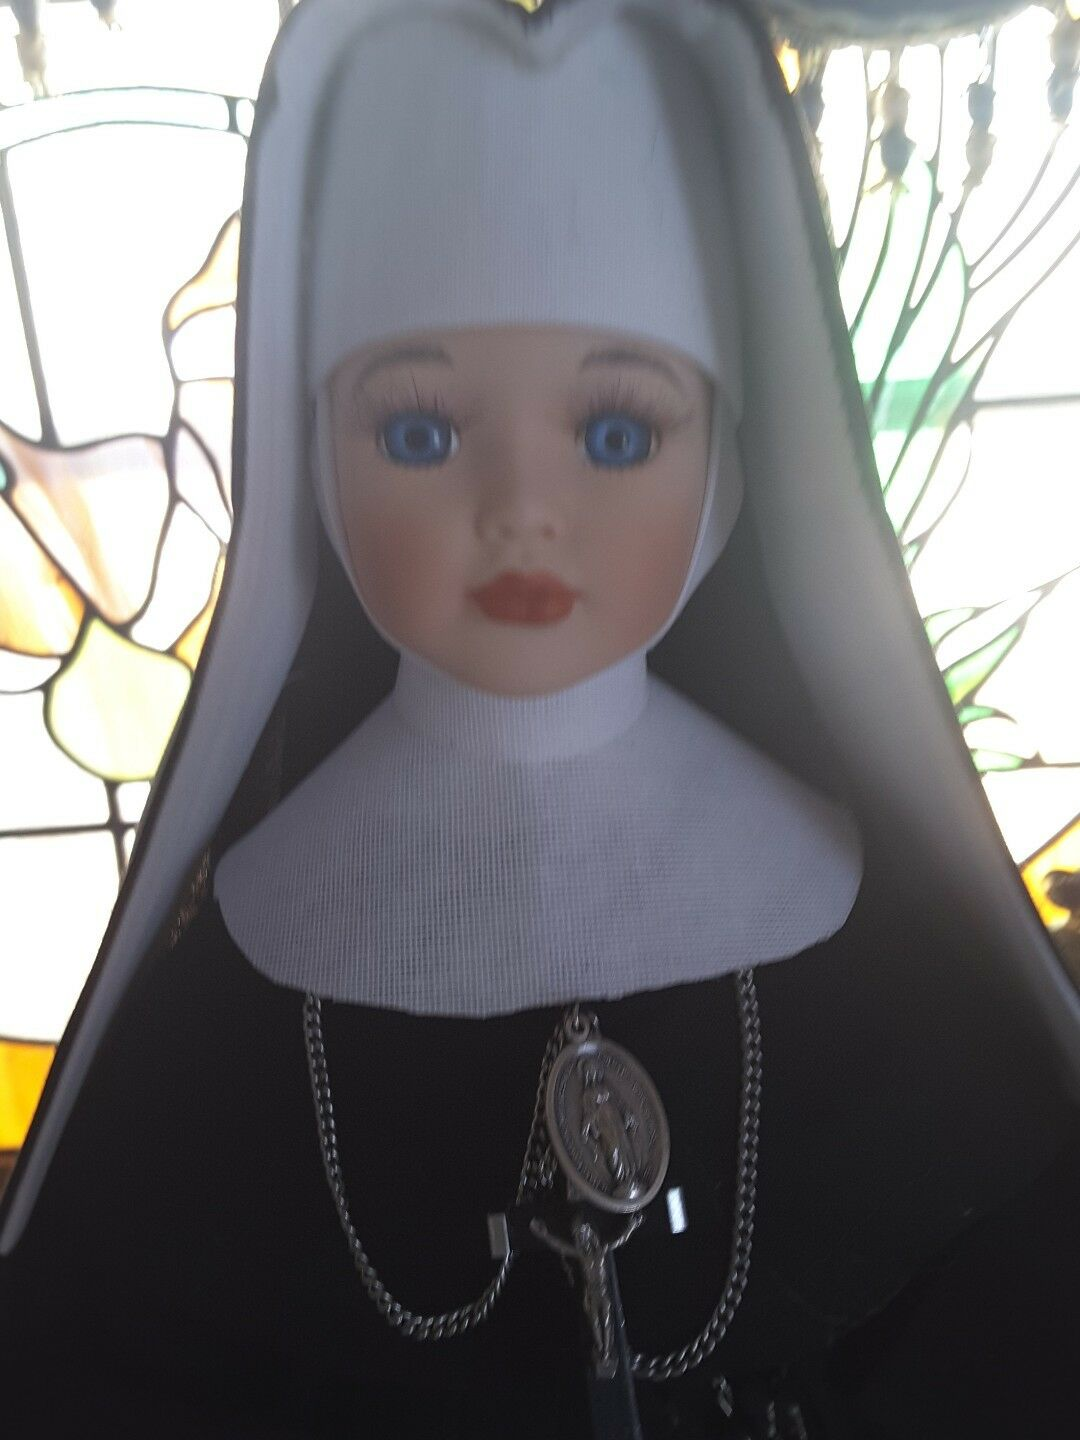 Porcelain doll.nuns.Nuns habits.Nun doll.dolls ( from Balthimore Md.)